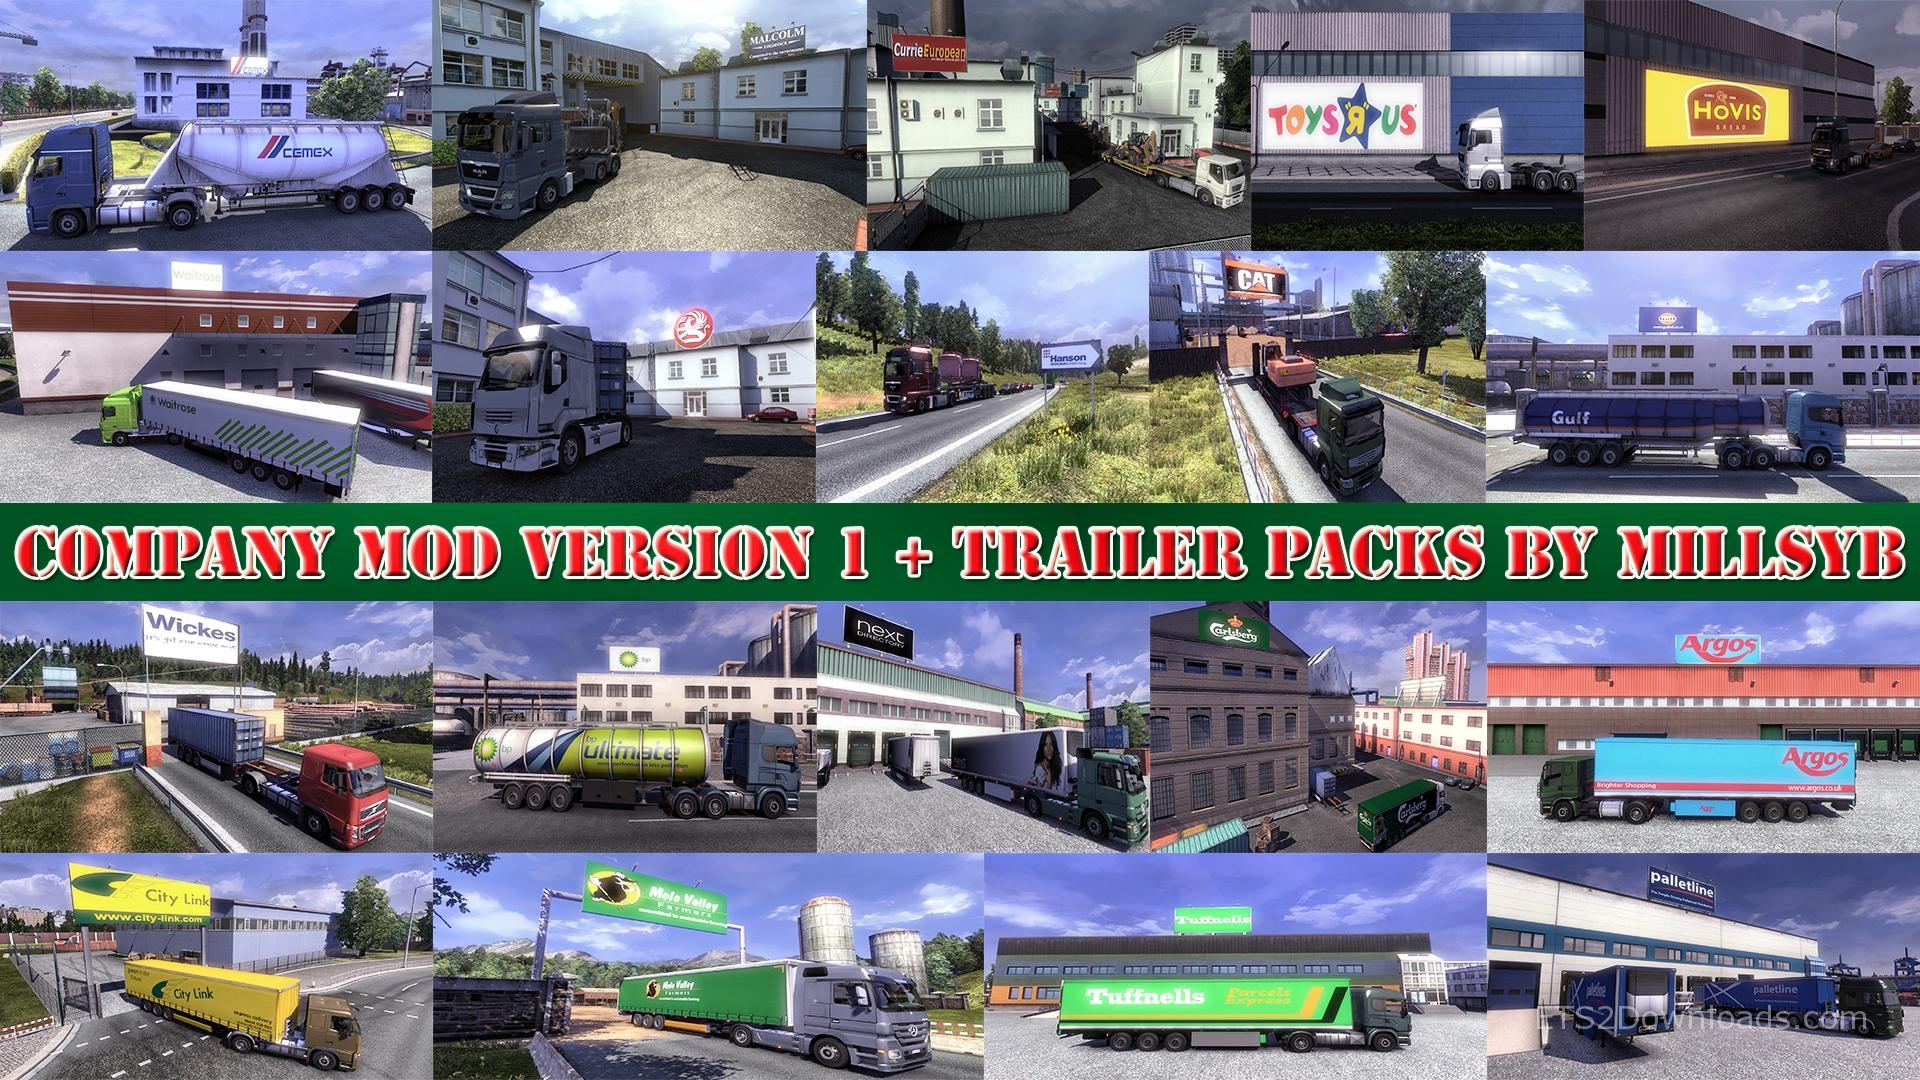 real-companies-and-trailers